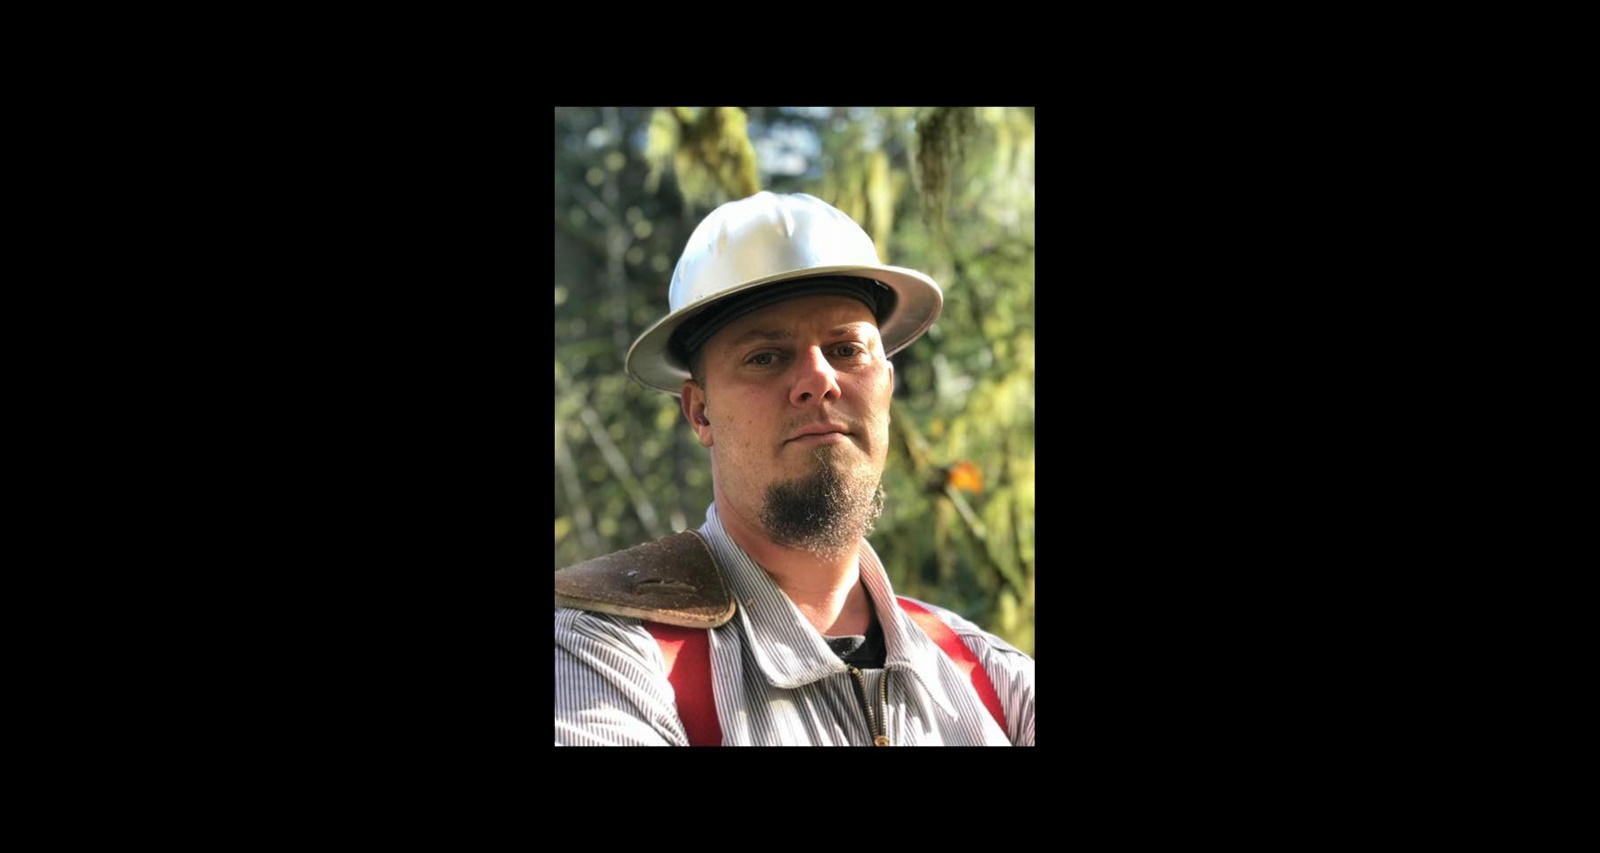 """What Happened To Stacey Robeson from """"Ax Men"""": Wiki and Facts To Know"""